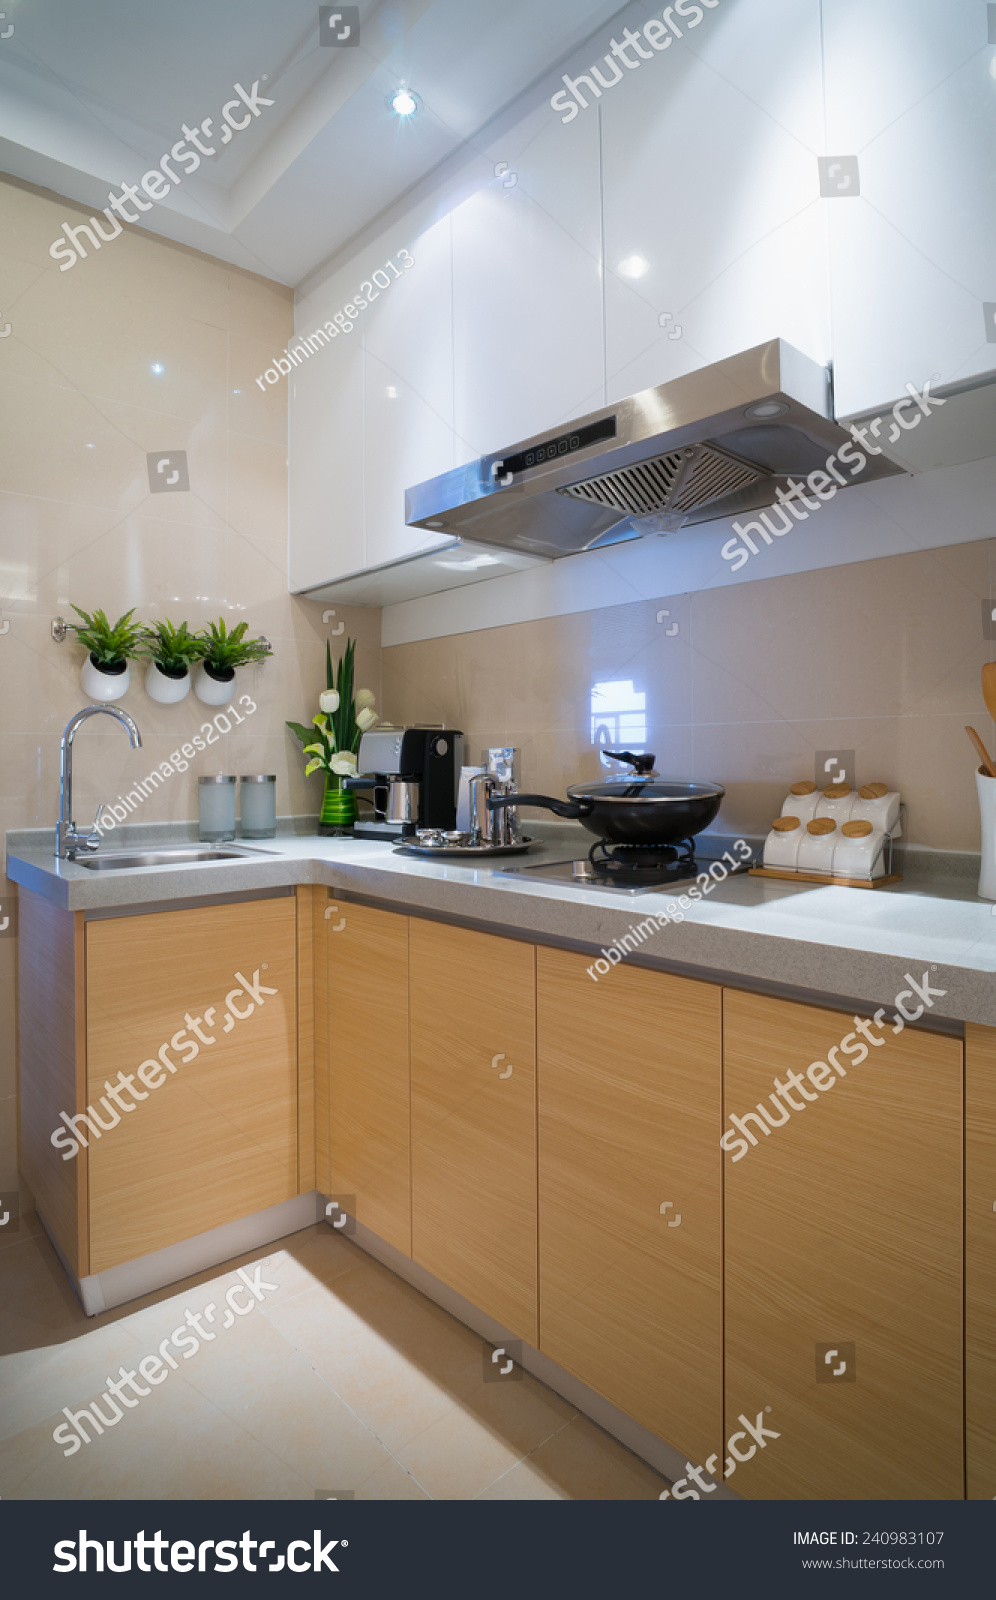 Cabinet D Architecte Nice modern kitchen nice cabinet stock photo (edit now) 240983107